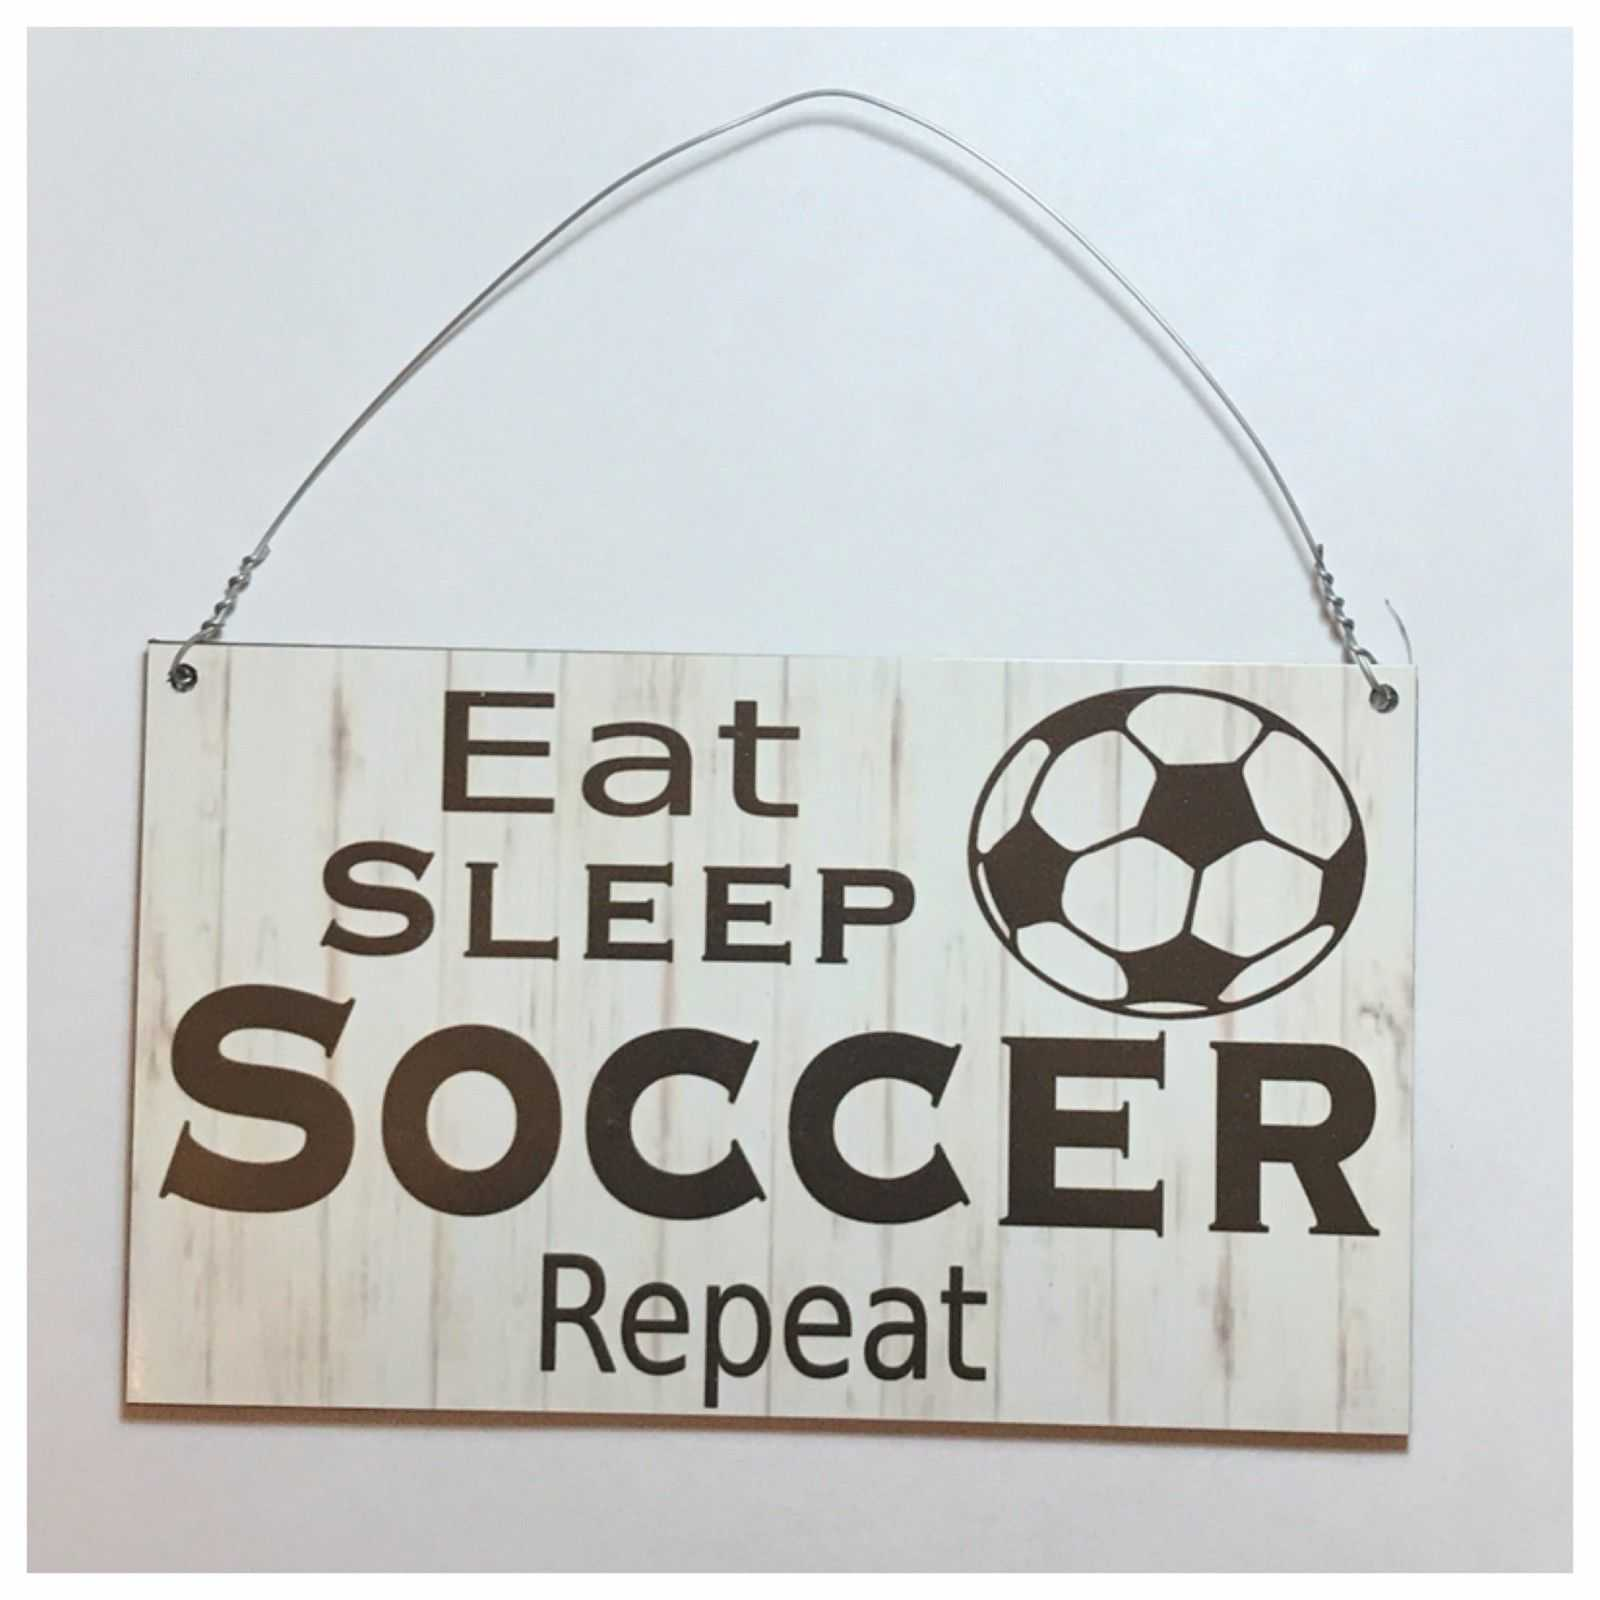 Eat Sleep Soccer Sign Wall Plaque or Hanging Plaques & Signs The Renmy Store